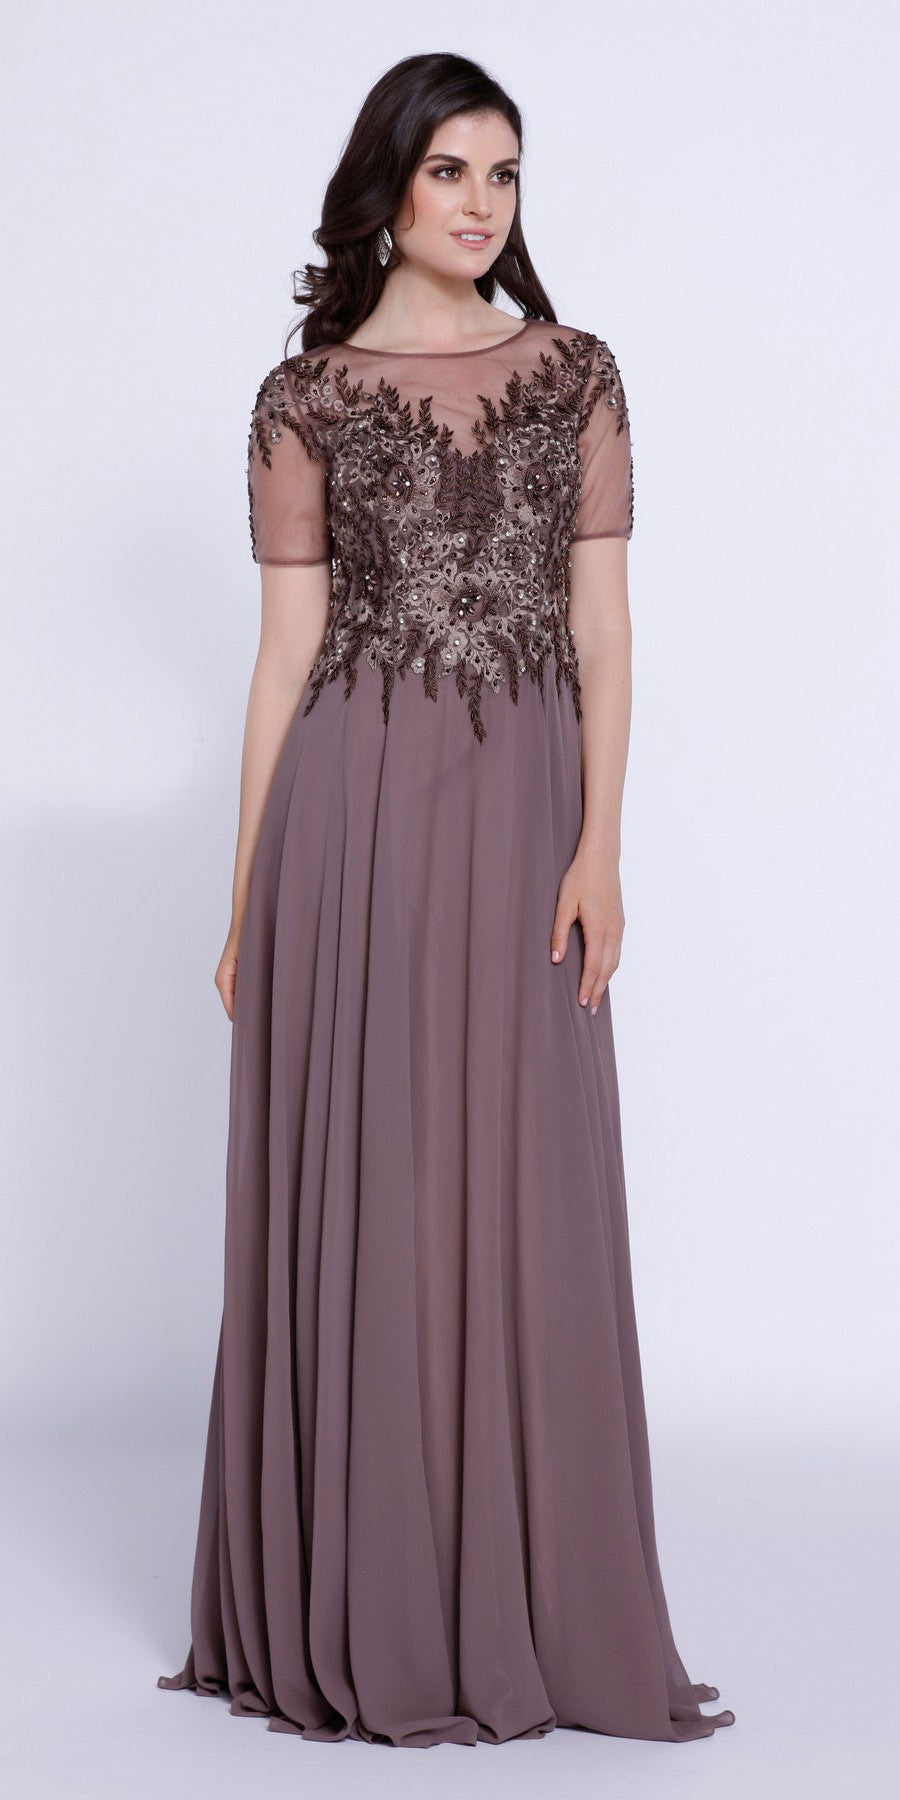 Short Sleeves Applique Bodice Floor Length Formal Dress Mocha